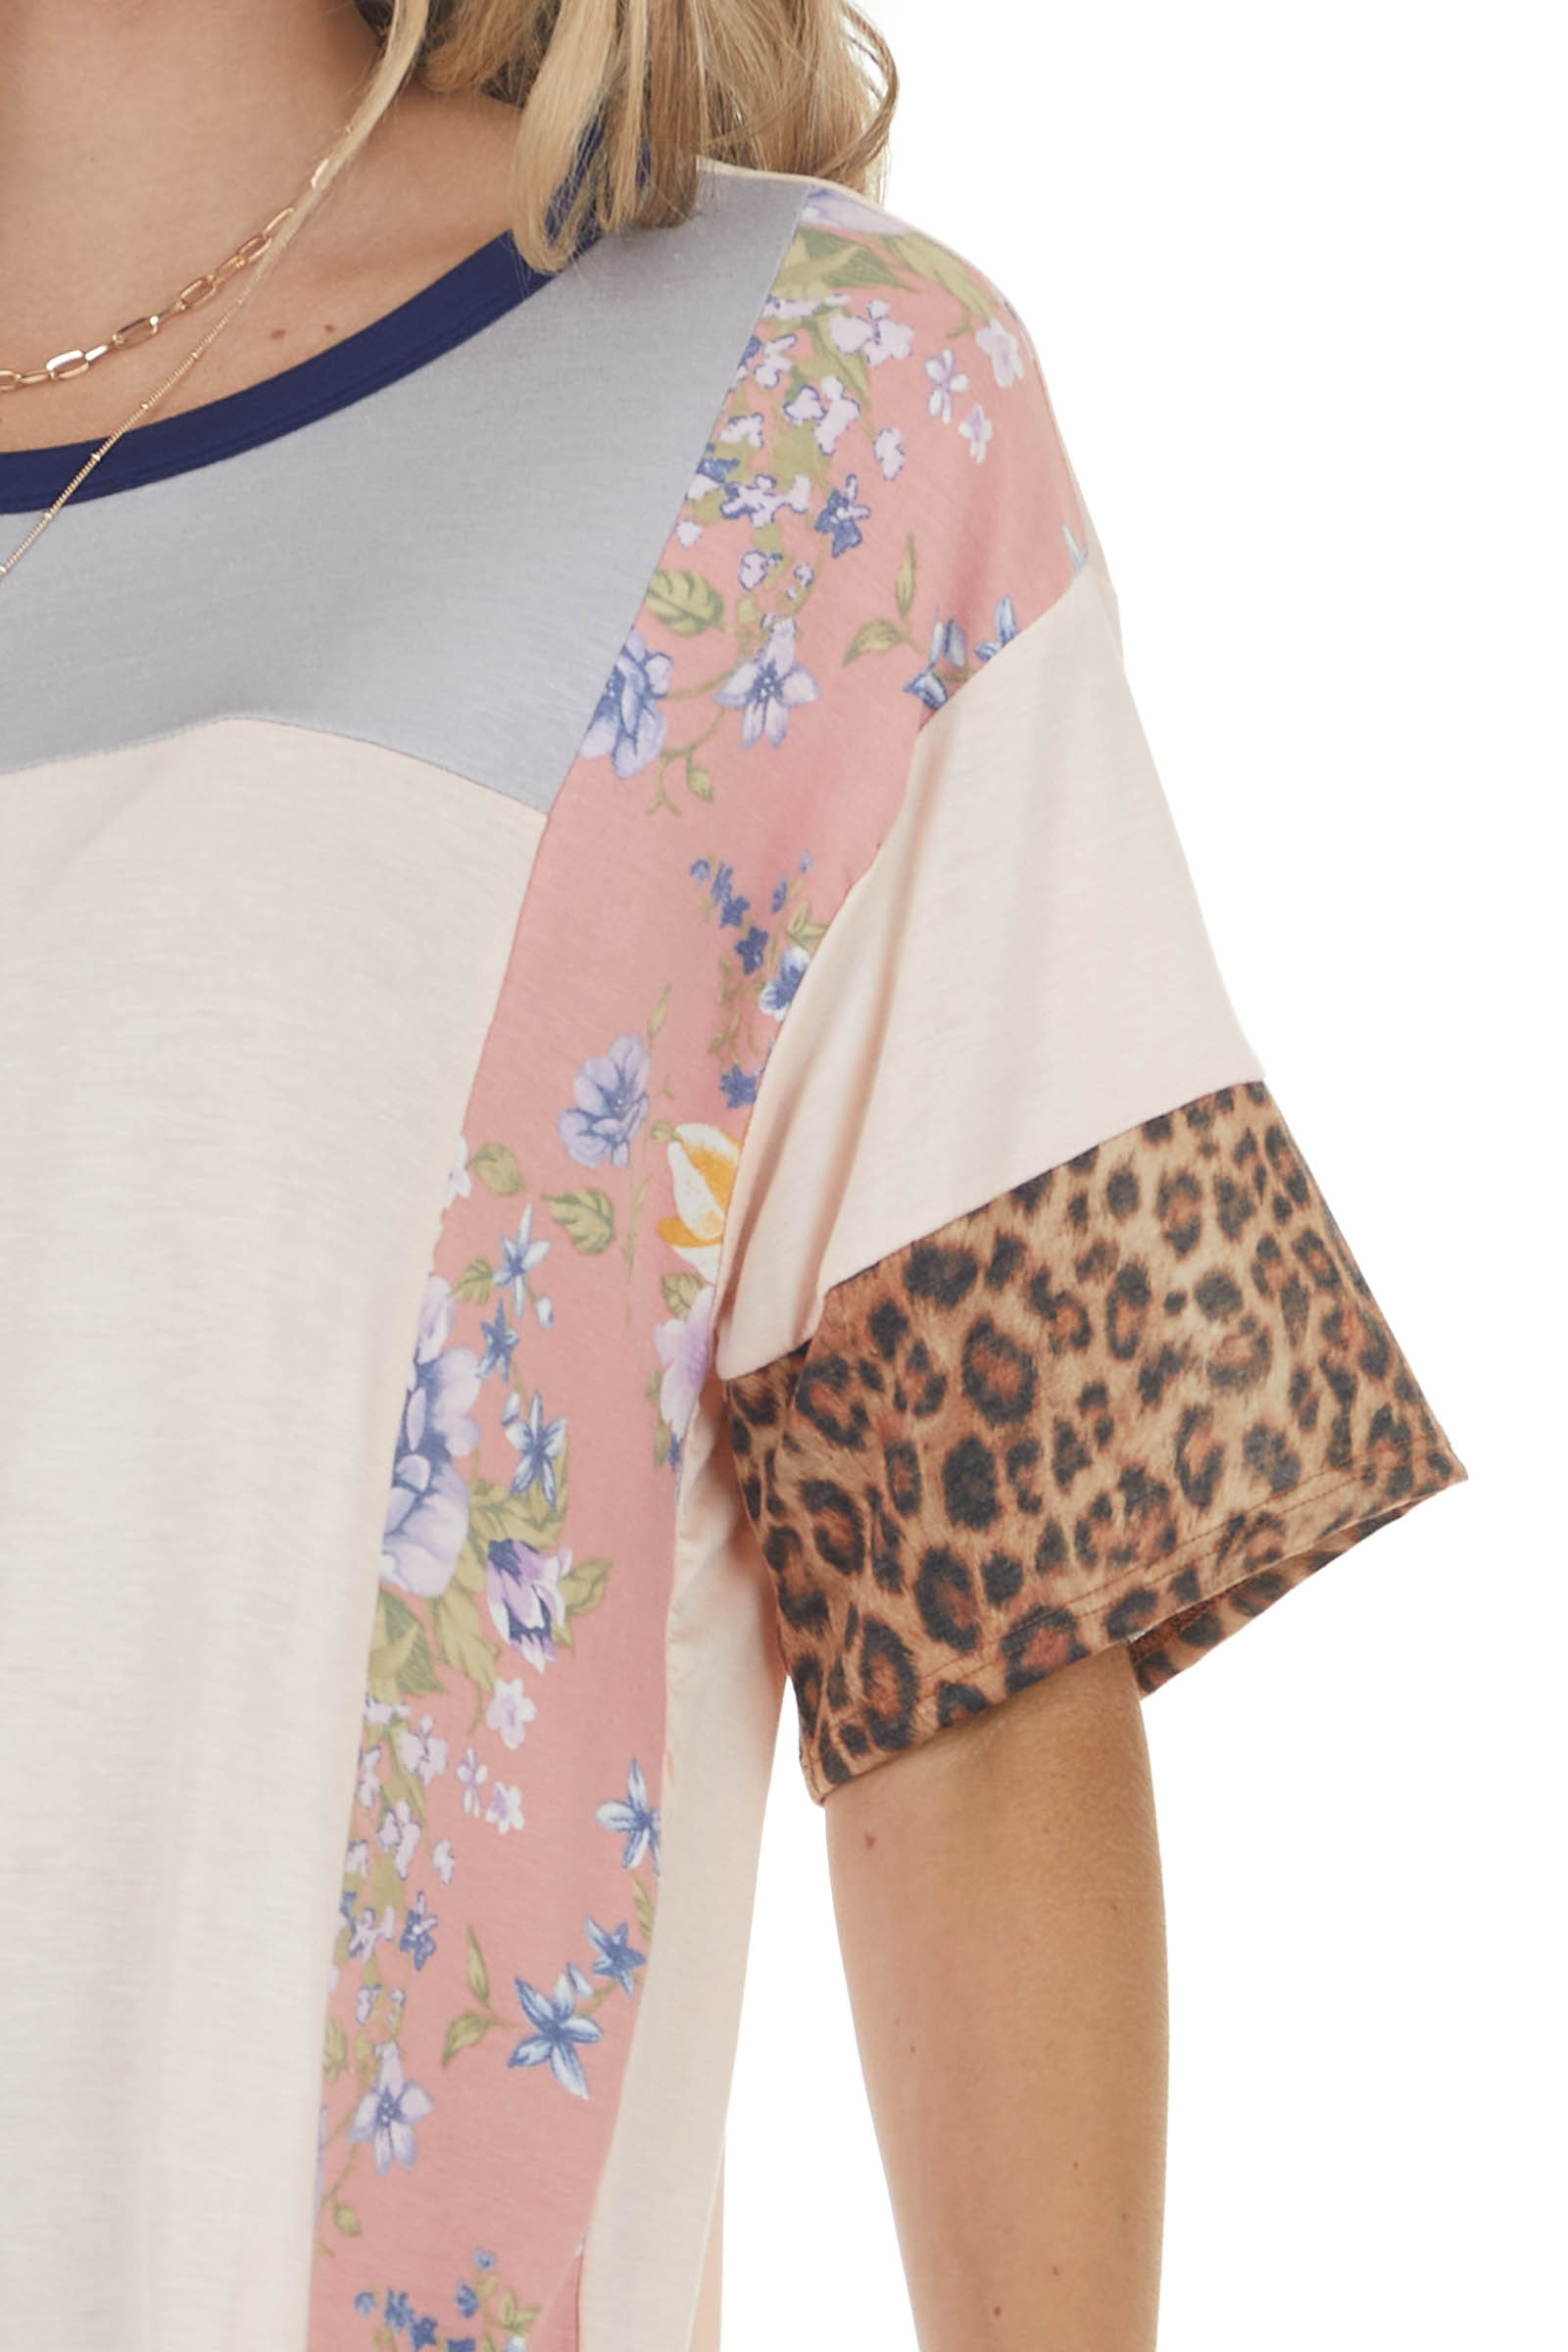 Light Peach Knit Top with Floral and Leopard Print Contrast